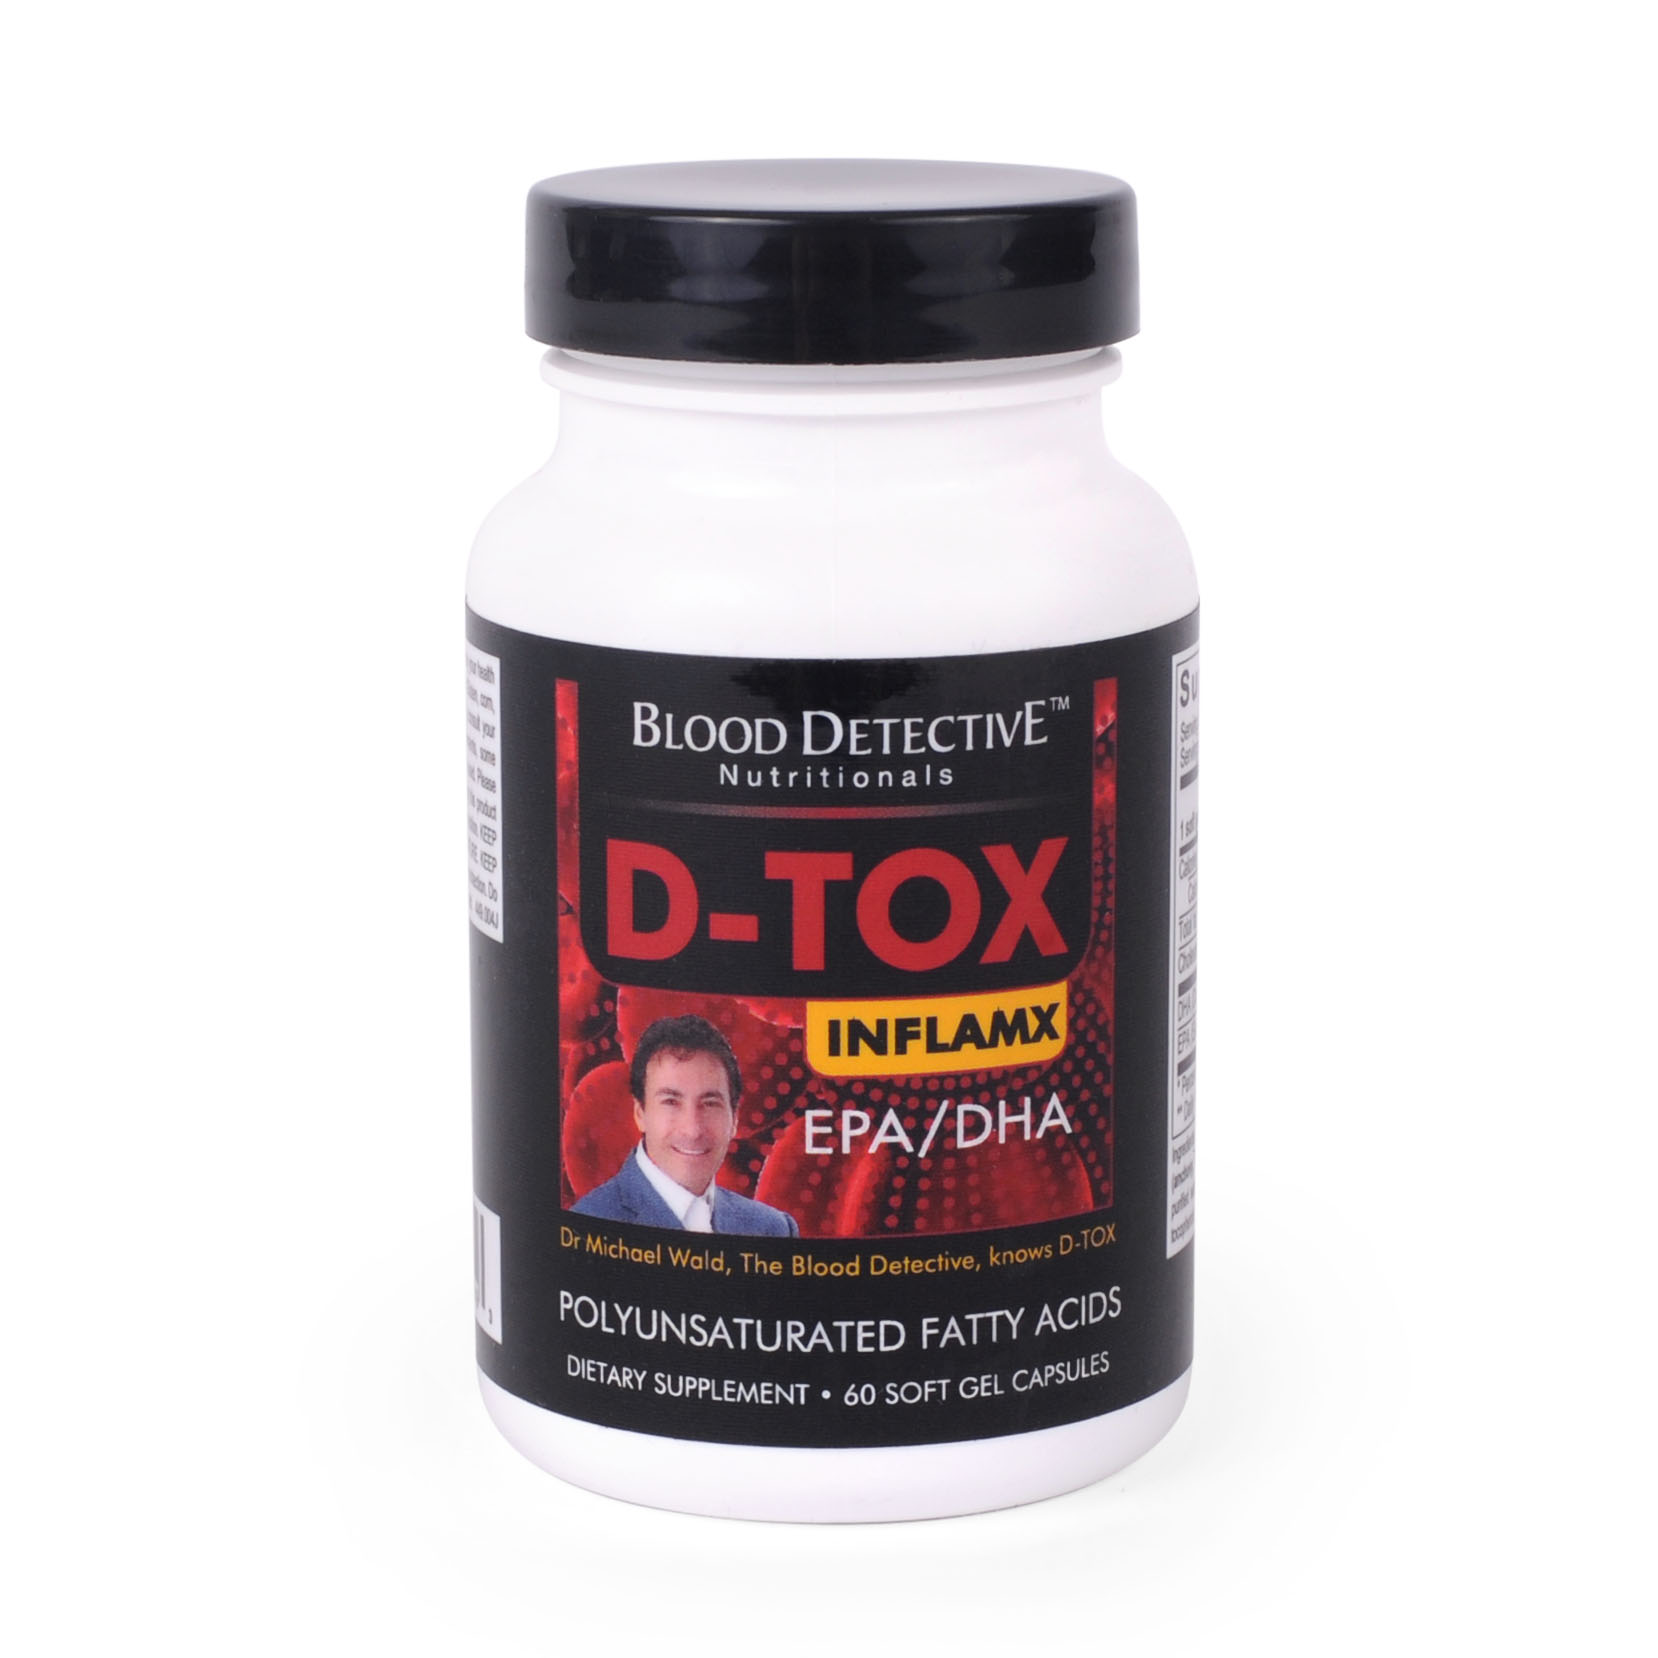 d-tox inflamx epa/dha